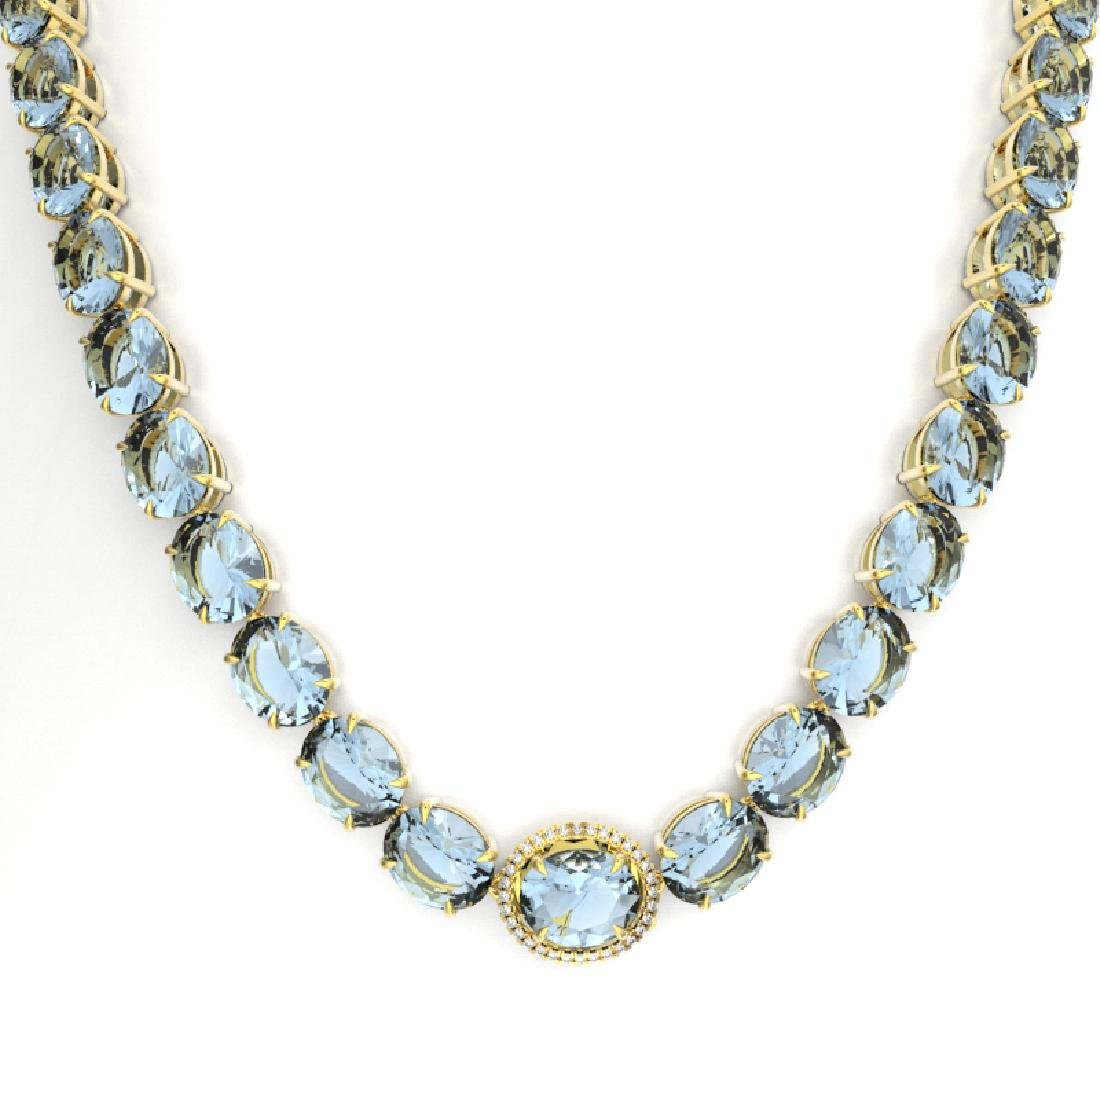 136 CTW Aquamarine & VS/SI Diamond Necklace 14K Yellow - 2